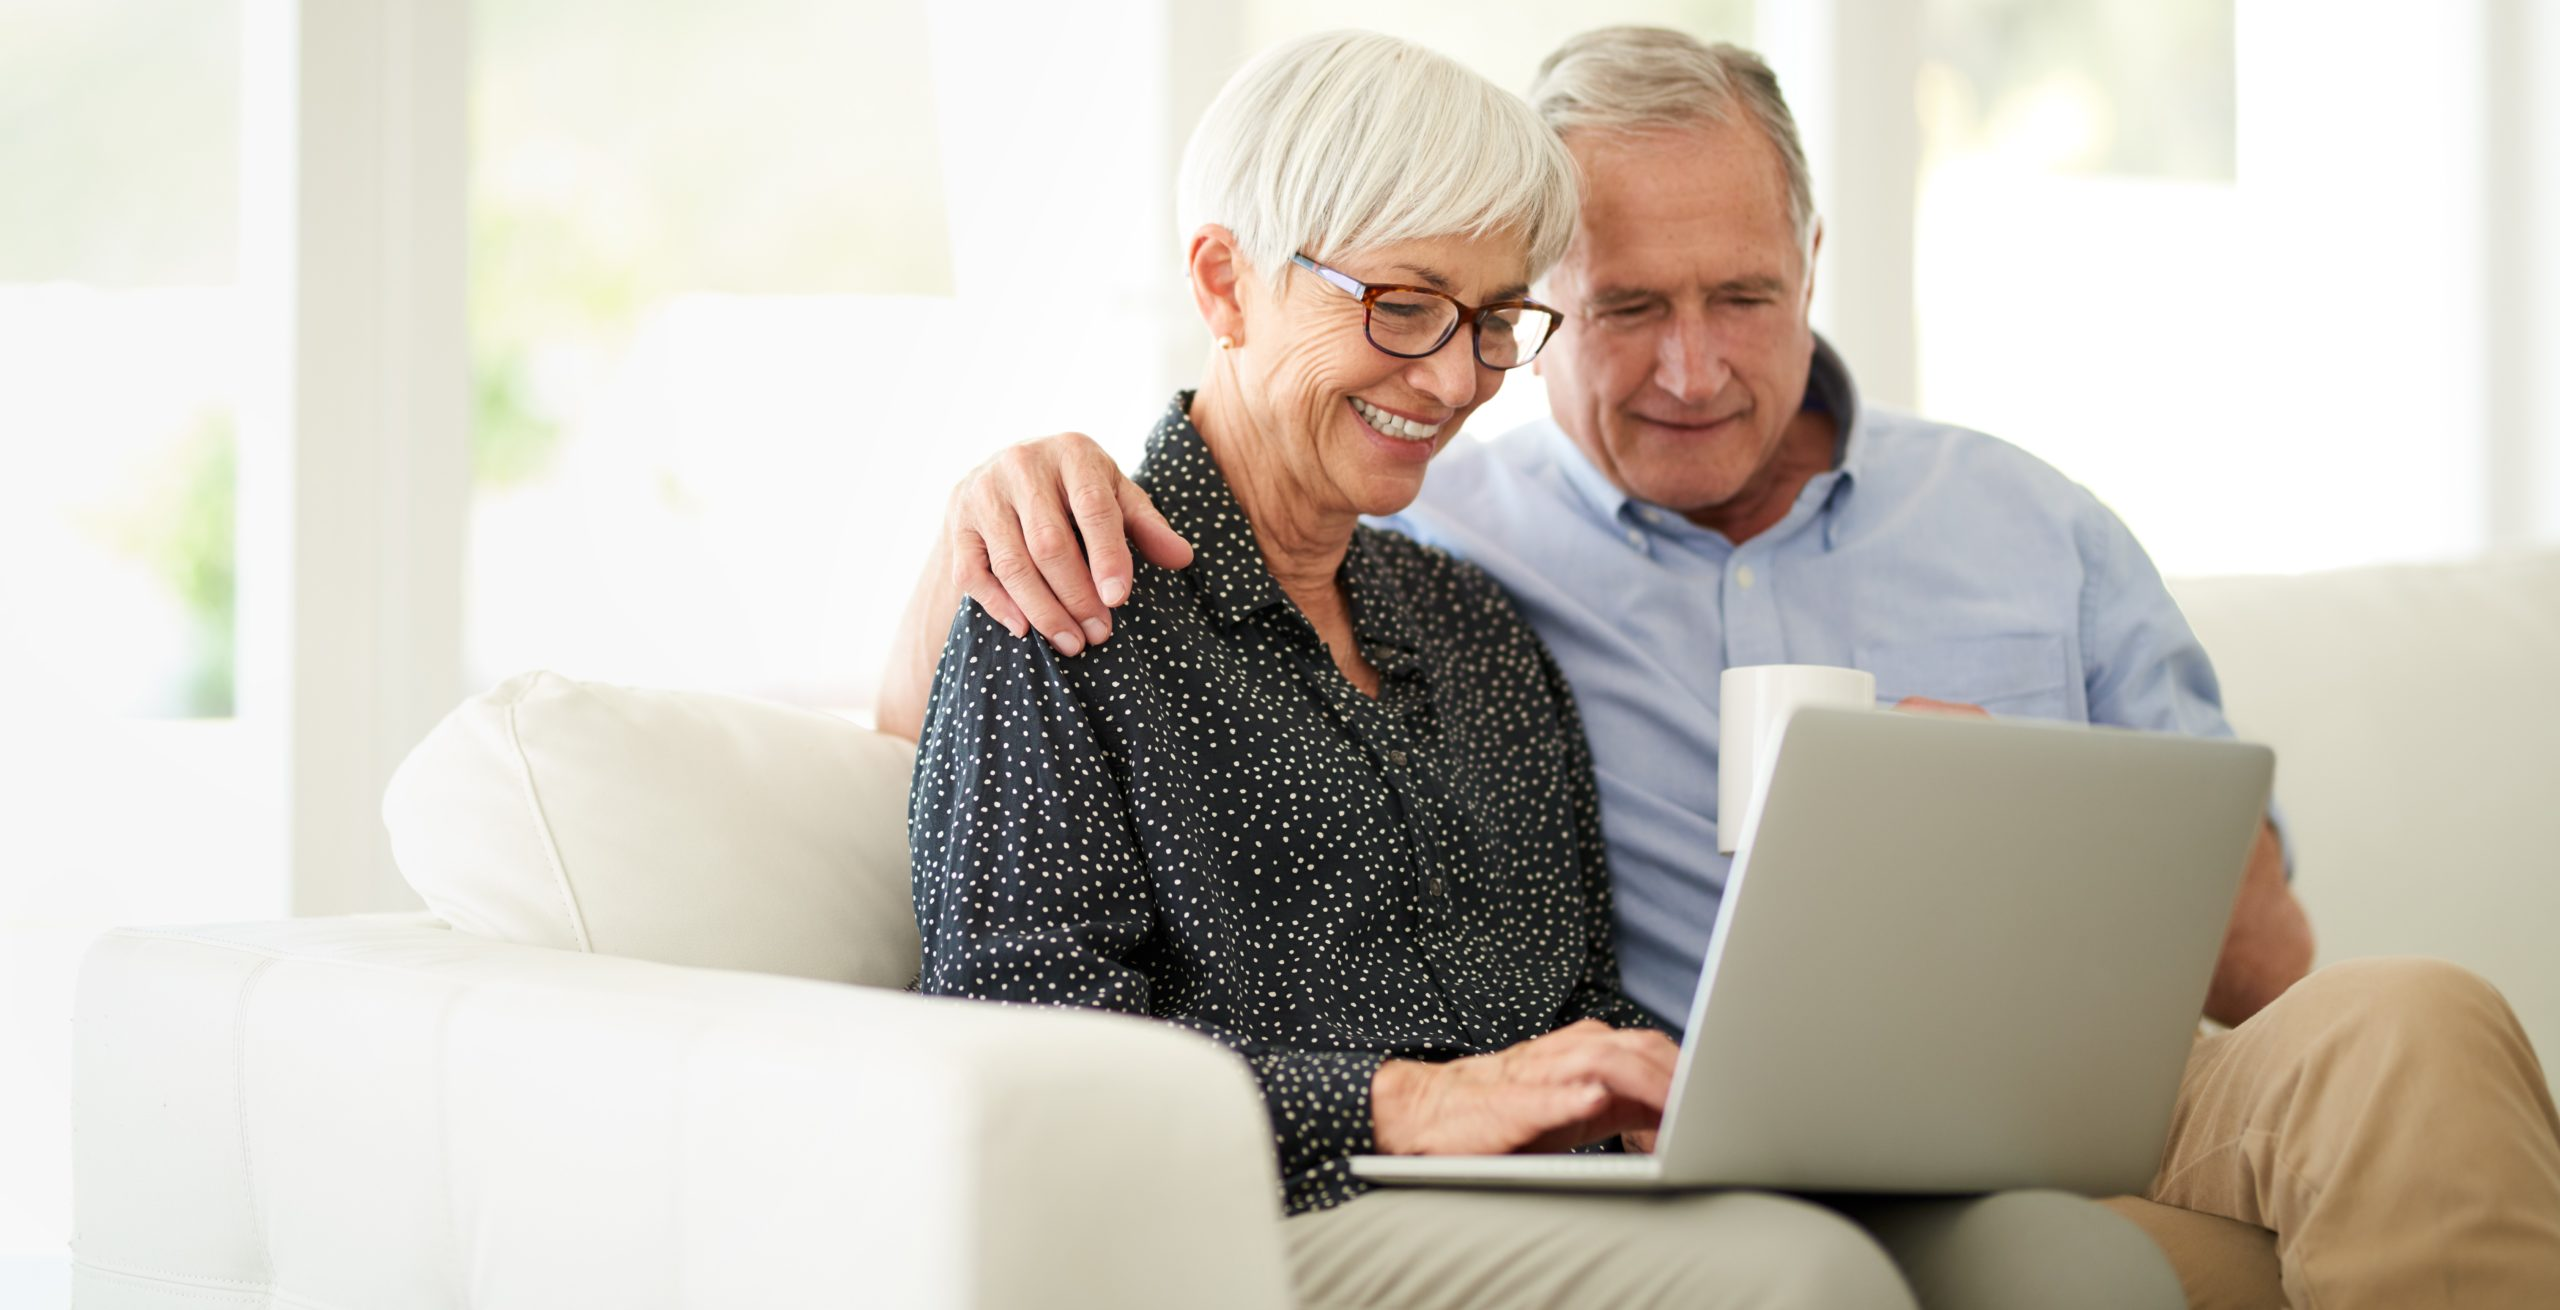 Senior couple sitting on a couch while on a laptop